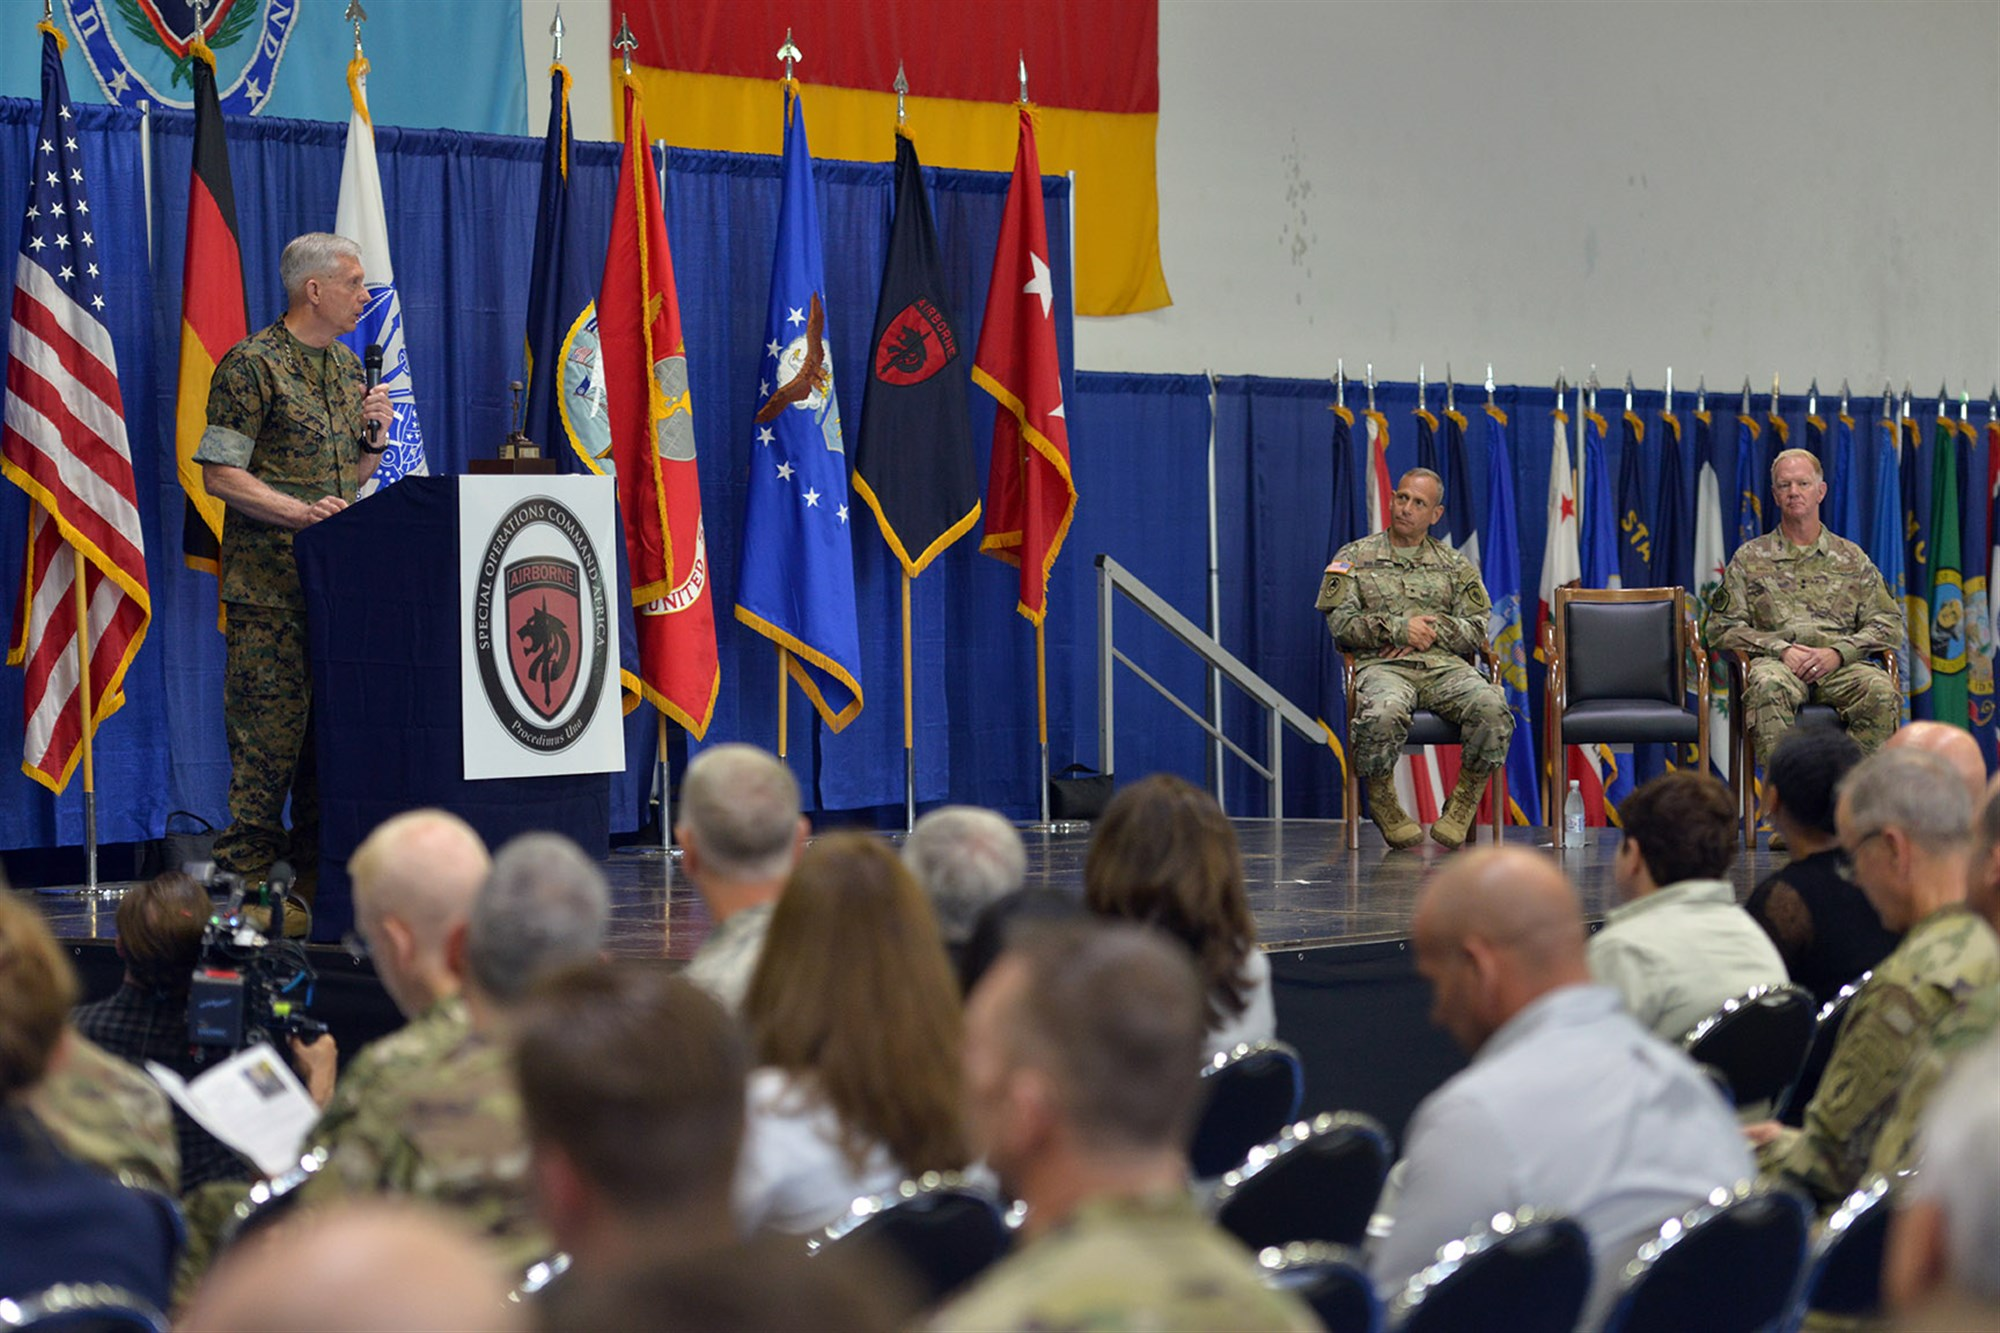 U.S. Marine Corps Gen. Thomas D. Waldhauser, commander of U.S. Africa Command, speaks during a change of command ceremony for Special Operations Command Africa at Kelley Barracks, Stuttgart, Germany, June 29, 2017. Special Operations Command Africa supports U.S. Africa Command by counter violent extremist organizations, building the military capacity of key partners in Africa and protecting U.S. personnel and facilities. (U.S. Army photo by Visual Information Specialist Jason Johnston.)